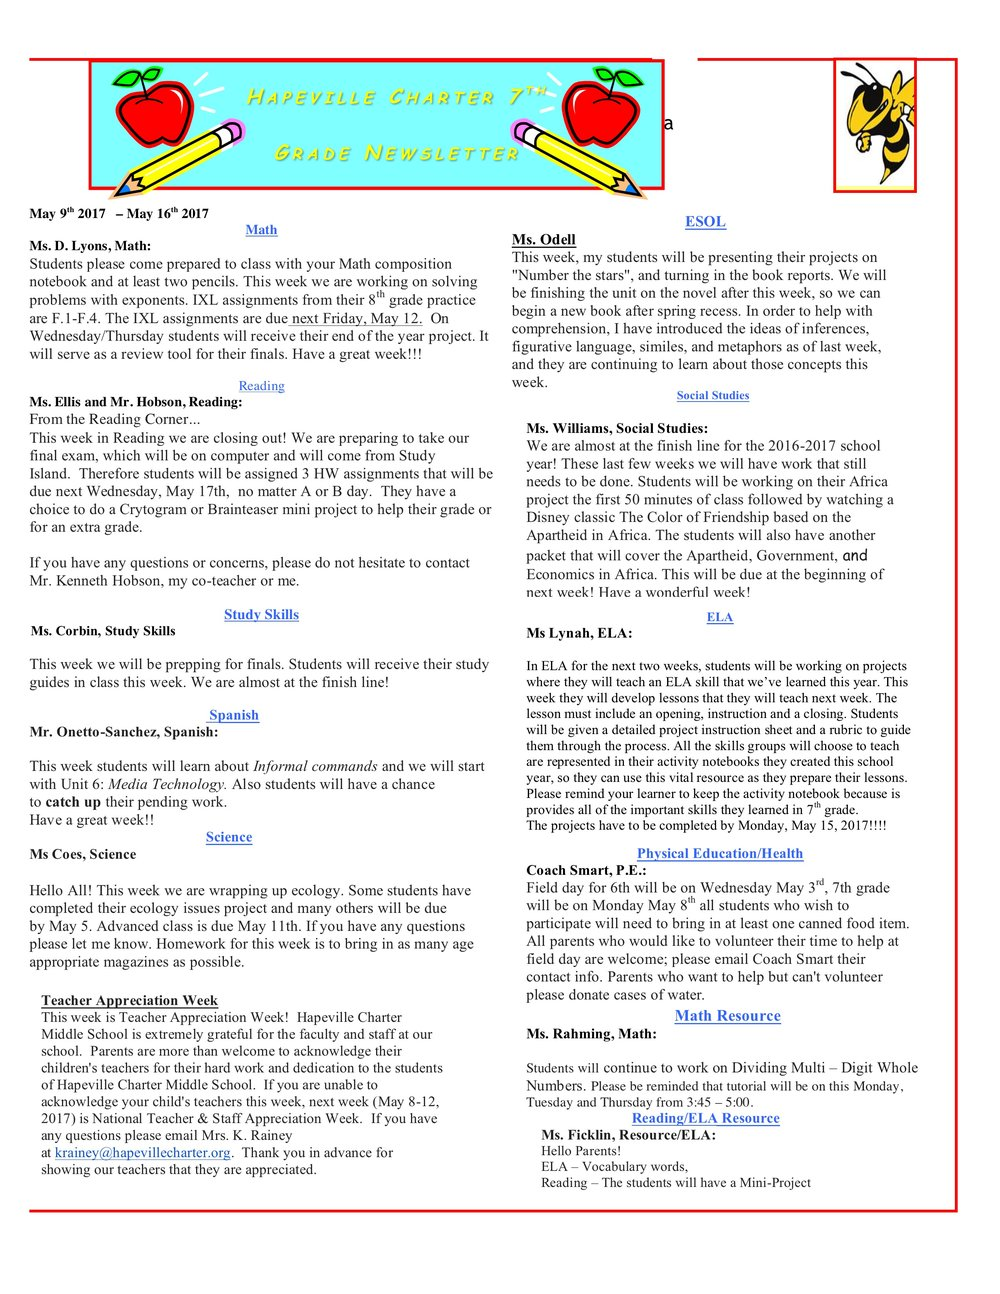 Newsletter Image7th Grade Newsletter 5-9-2017.jpeg